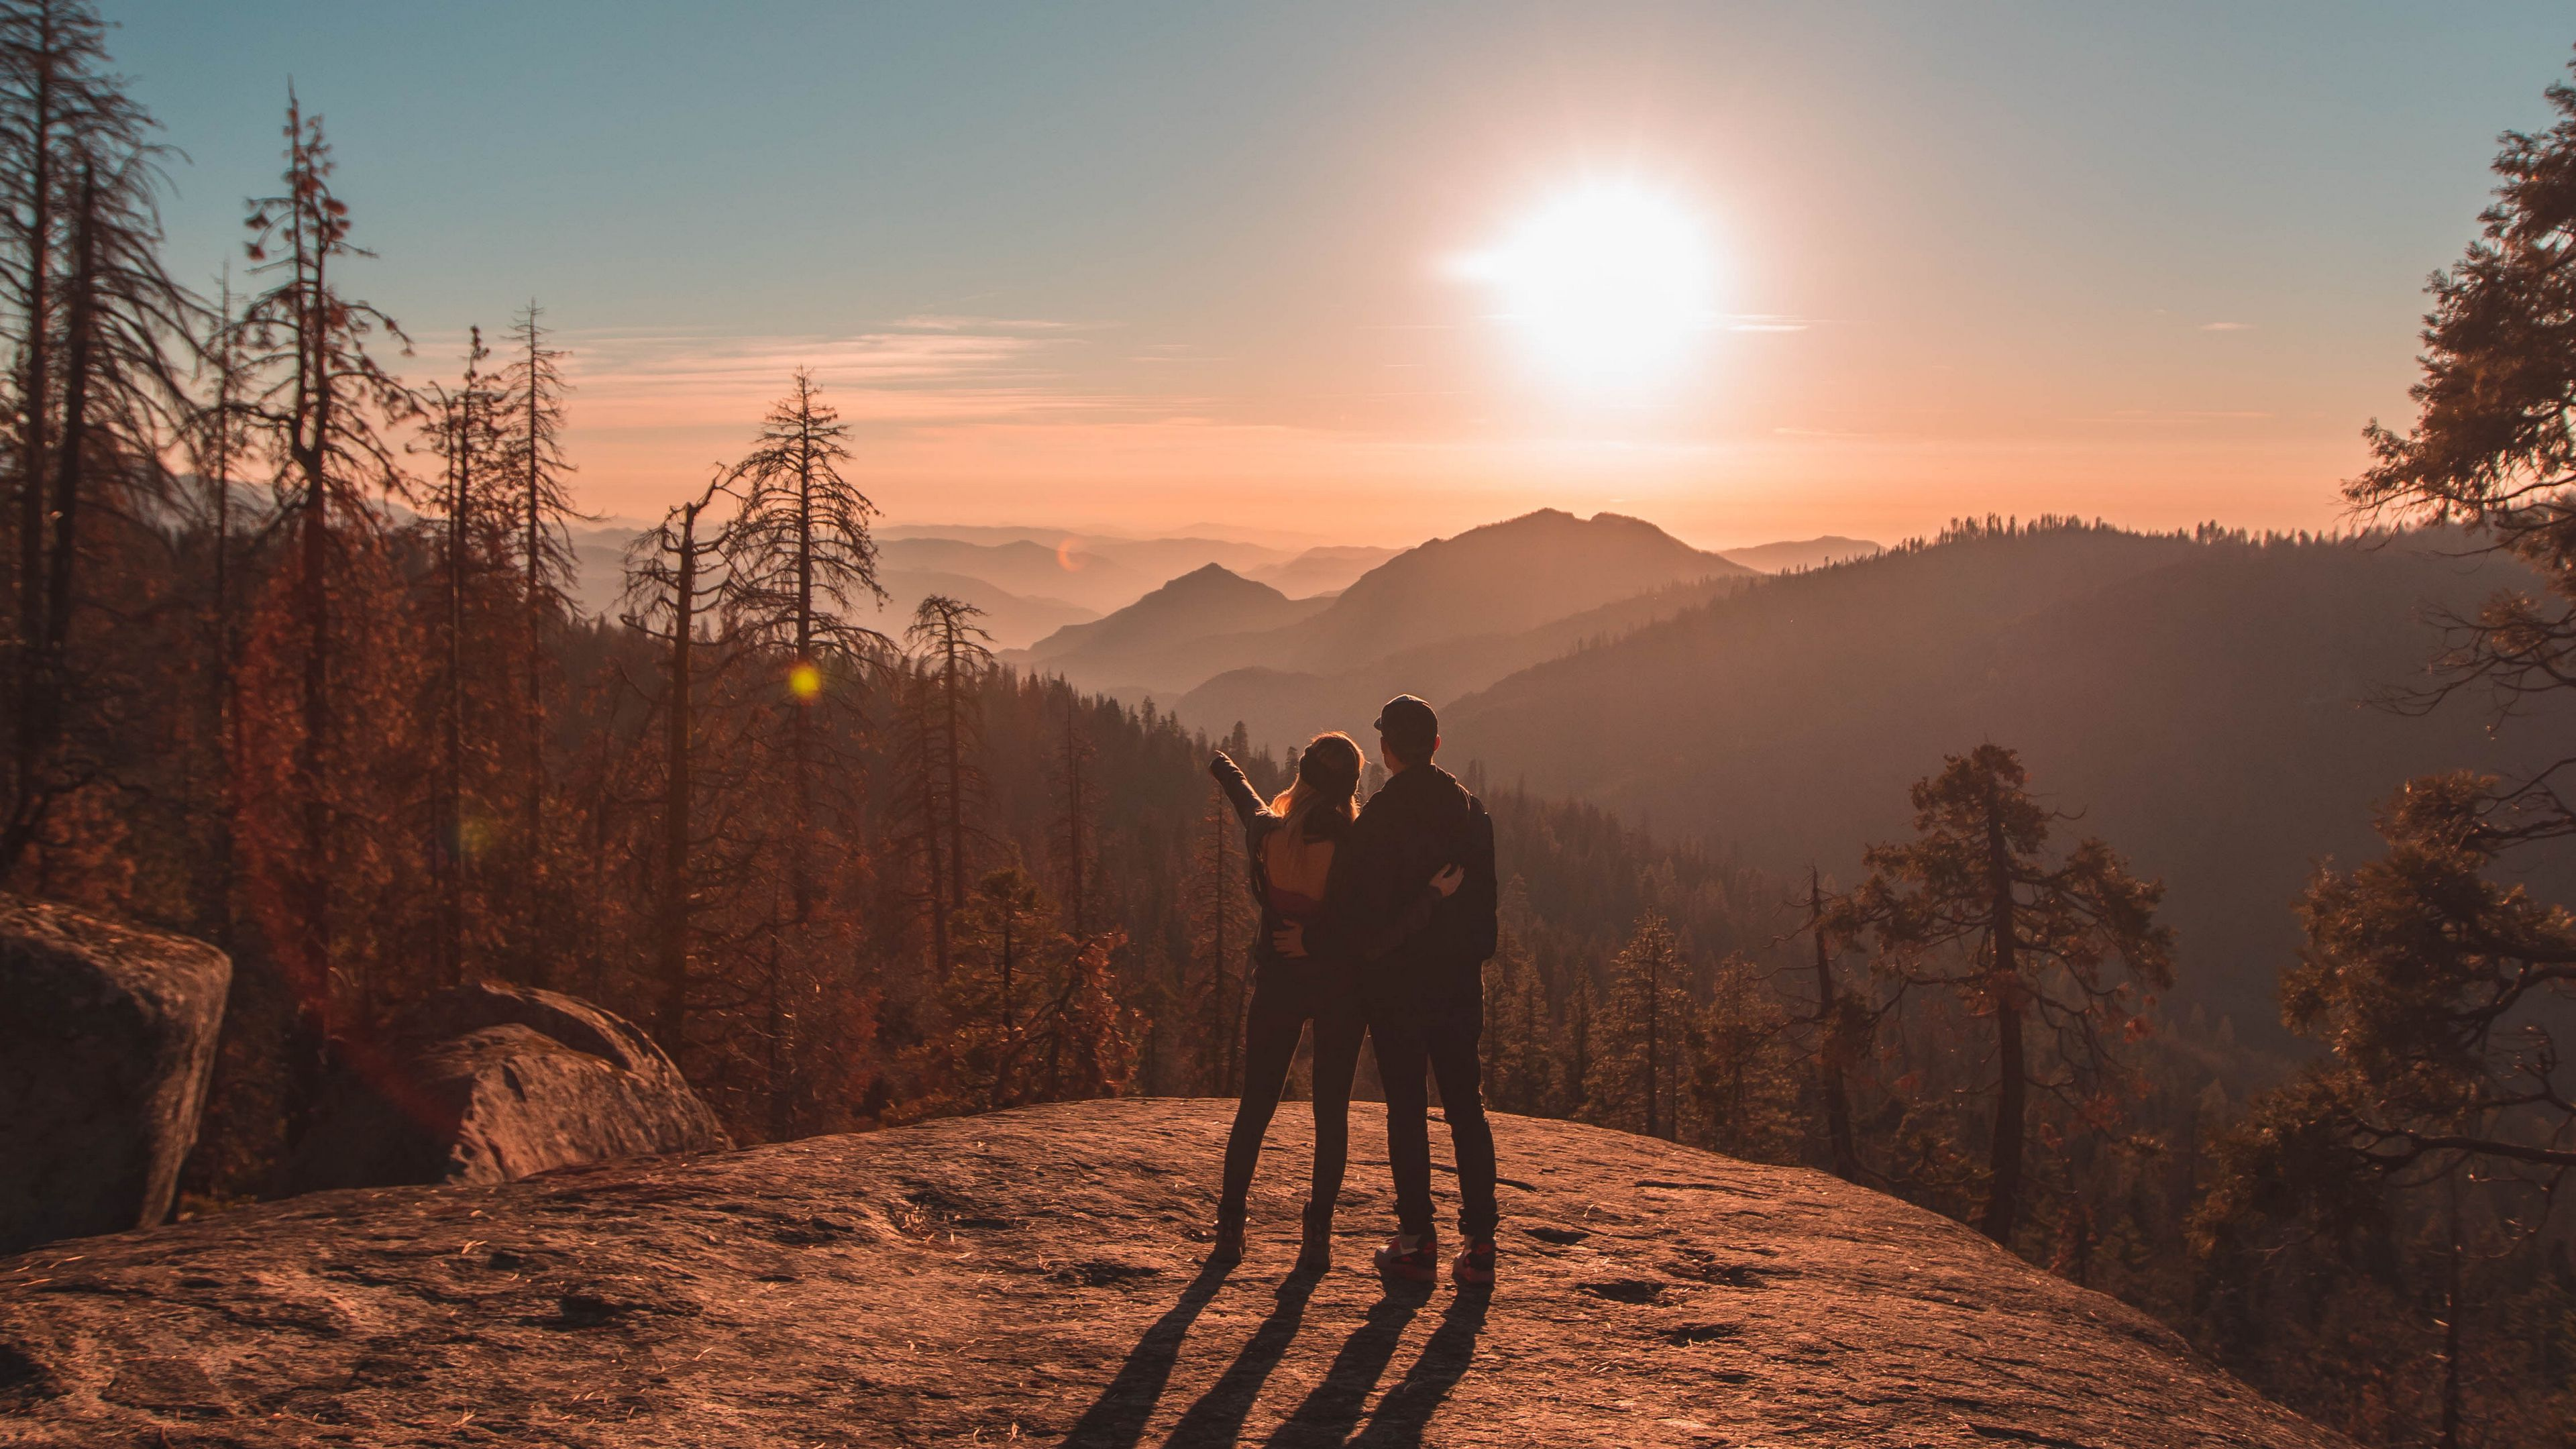 3840x2160 Wallpaper couple, mountains, travel, sunset, sequoia national park, united states